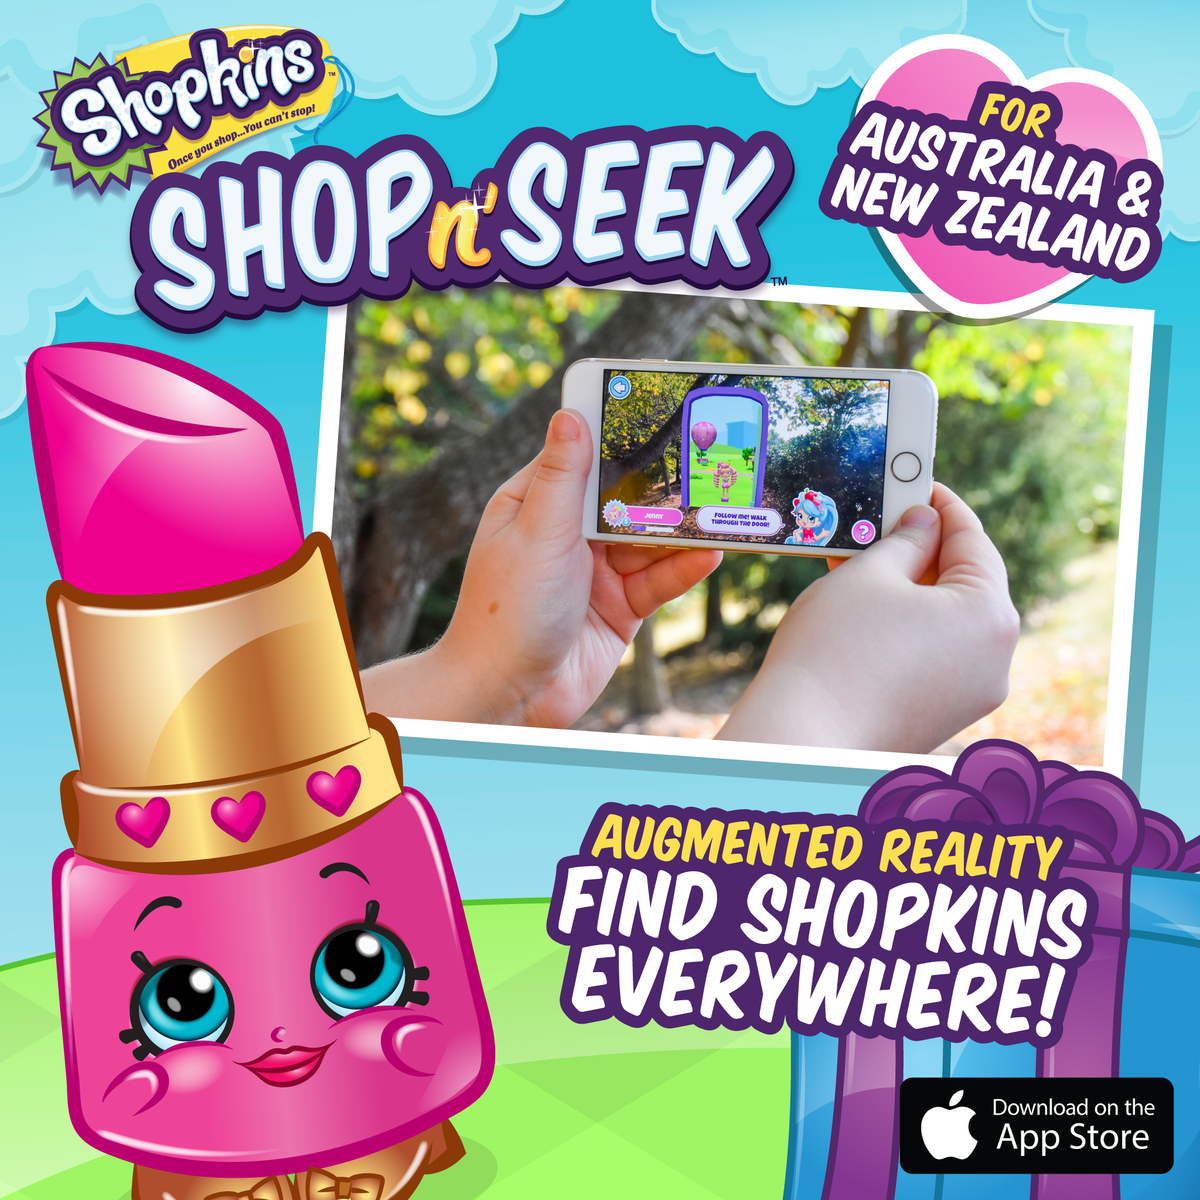 Shopkins Shop n' Seek for Australia and New Zealand